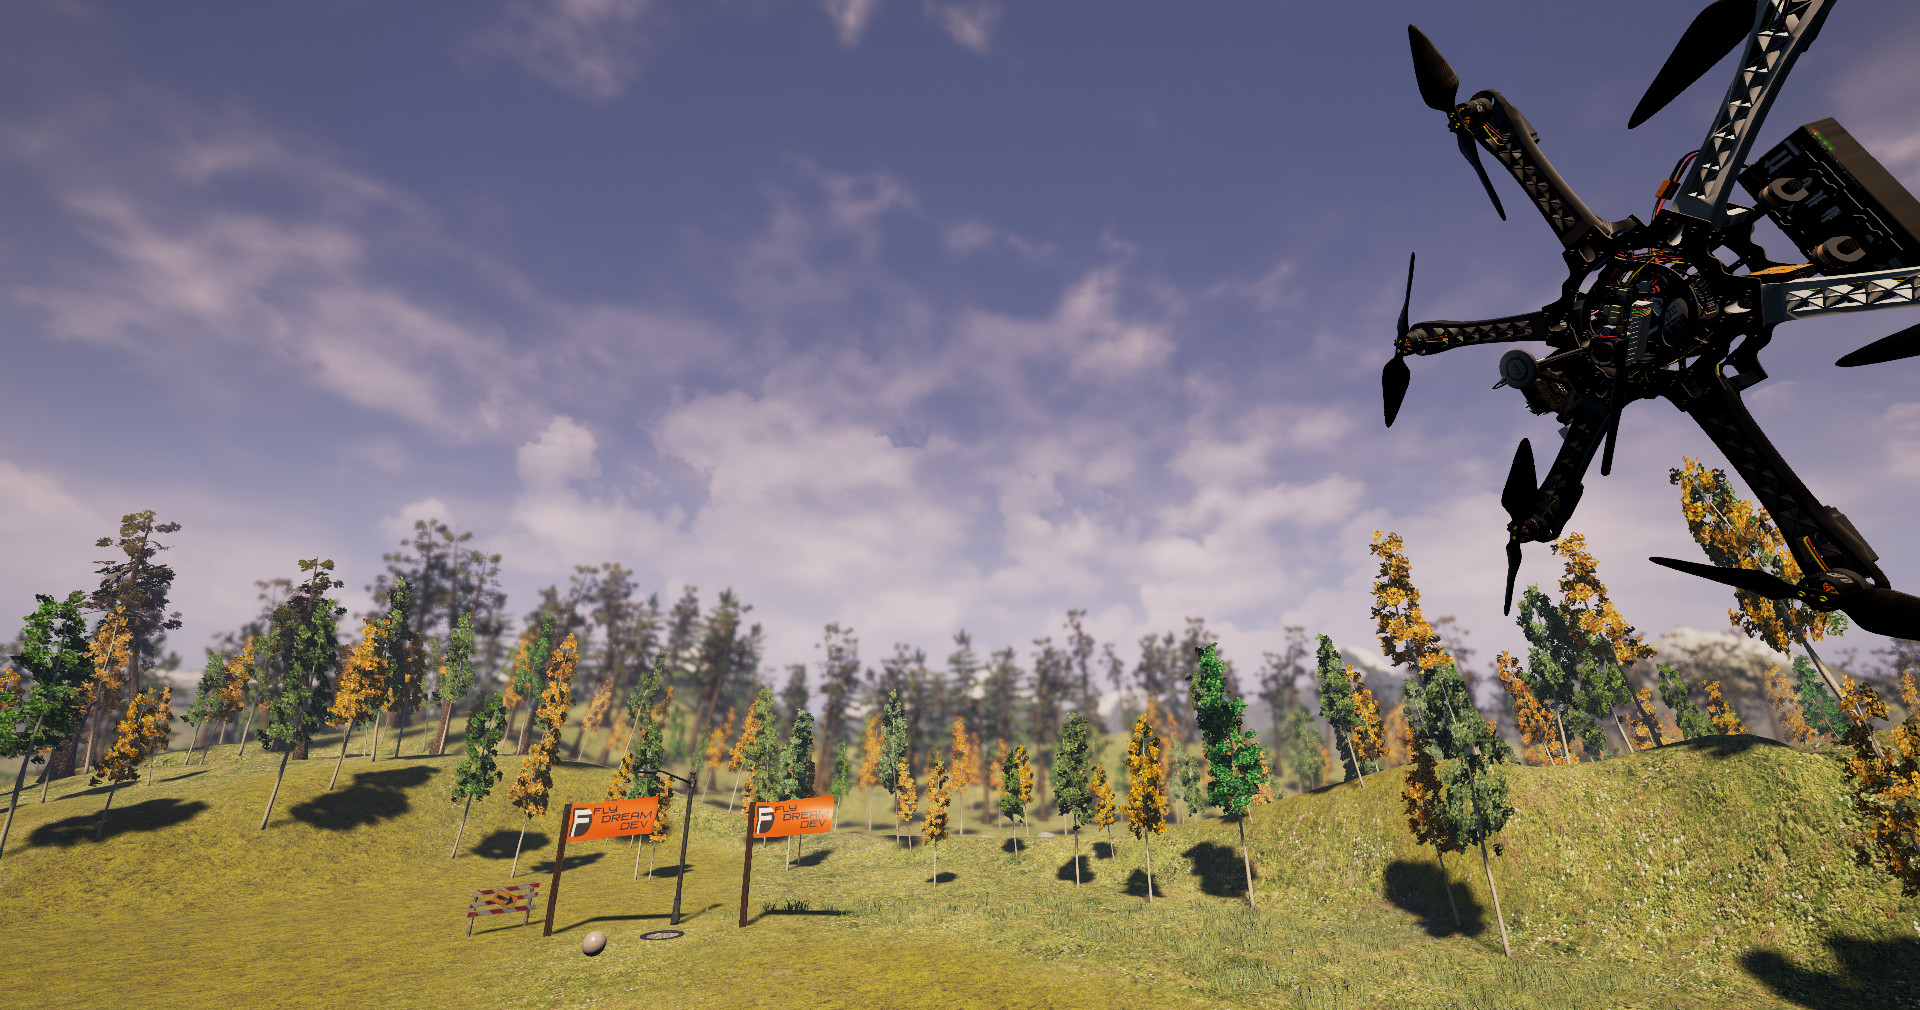 Copter and Sky screenshot